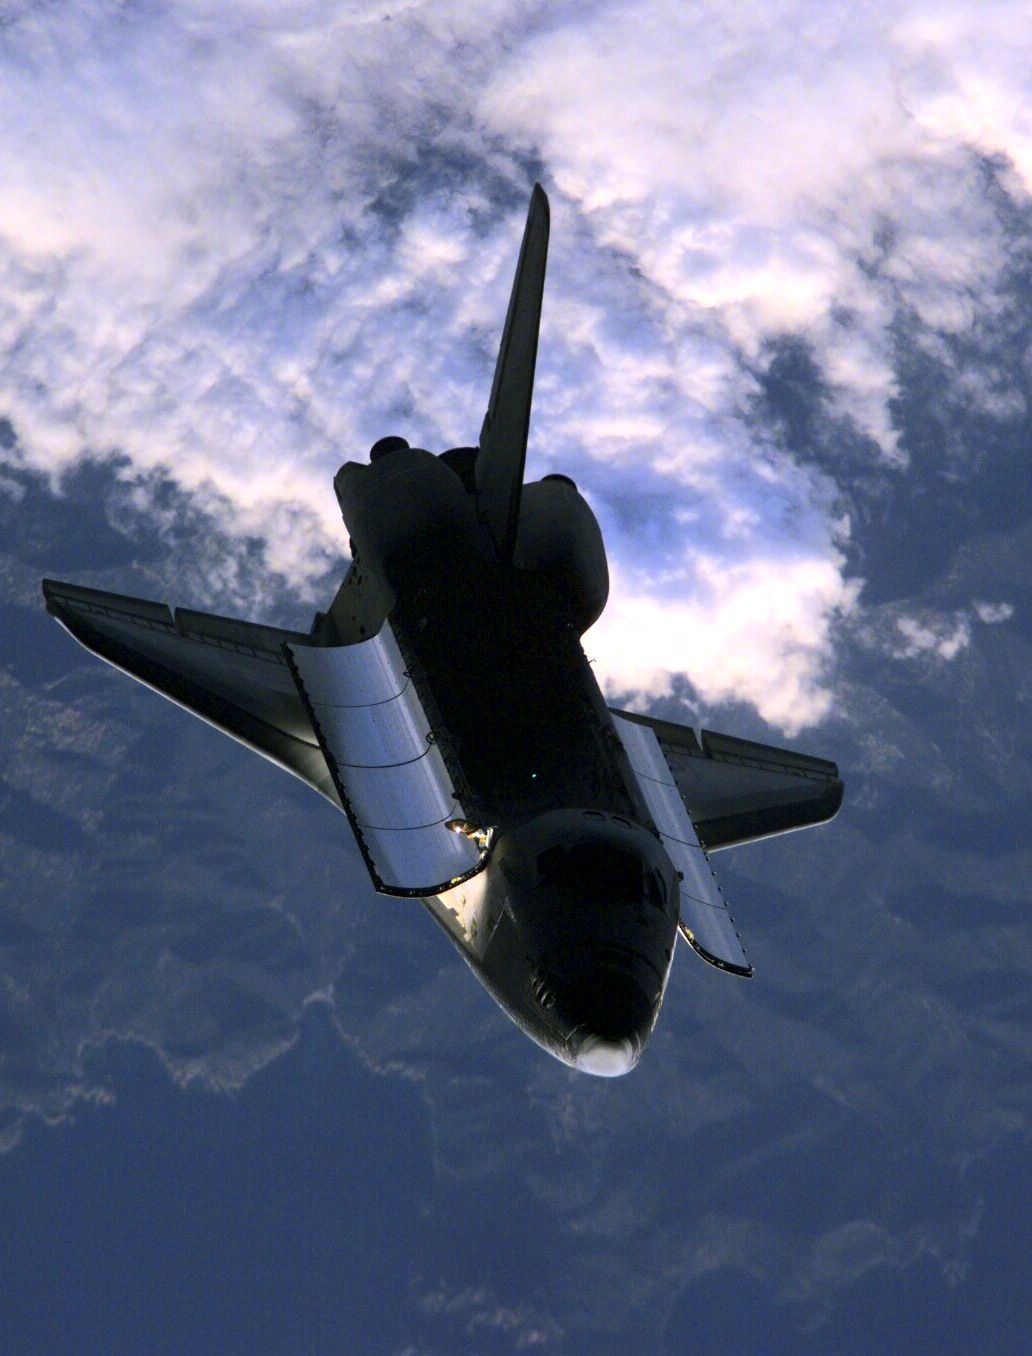 the space shuttle program technologies and accomplishments - photo #27